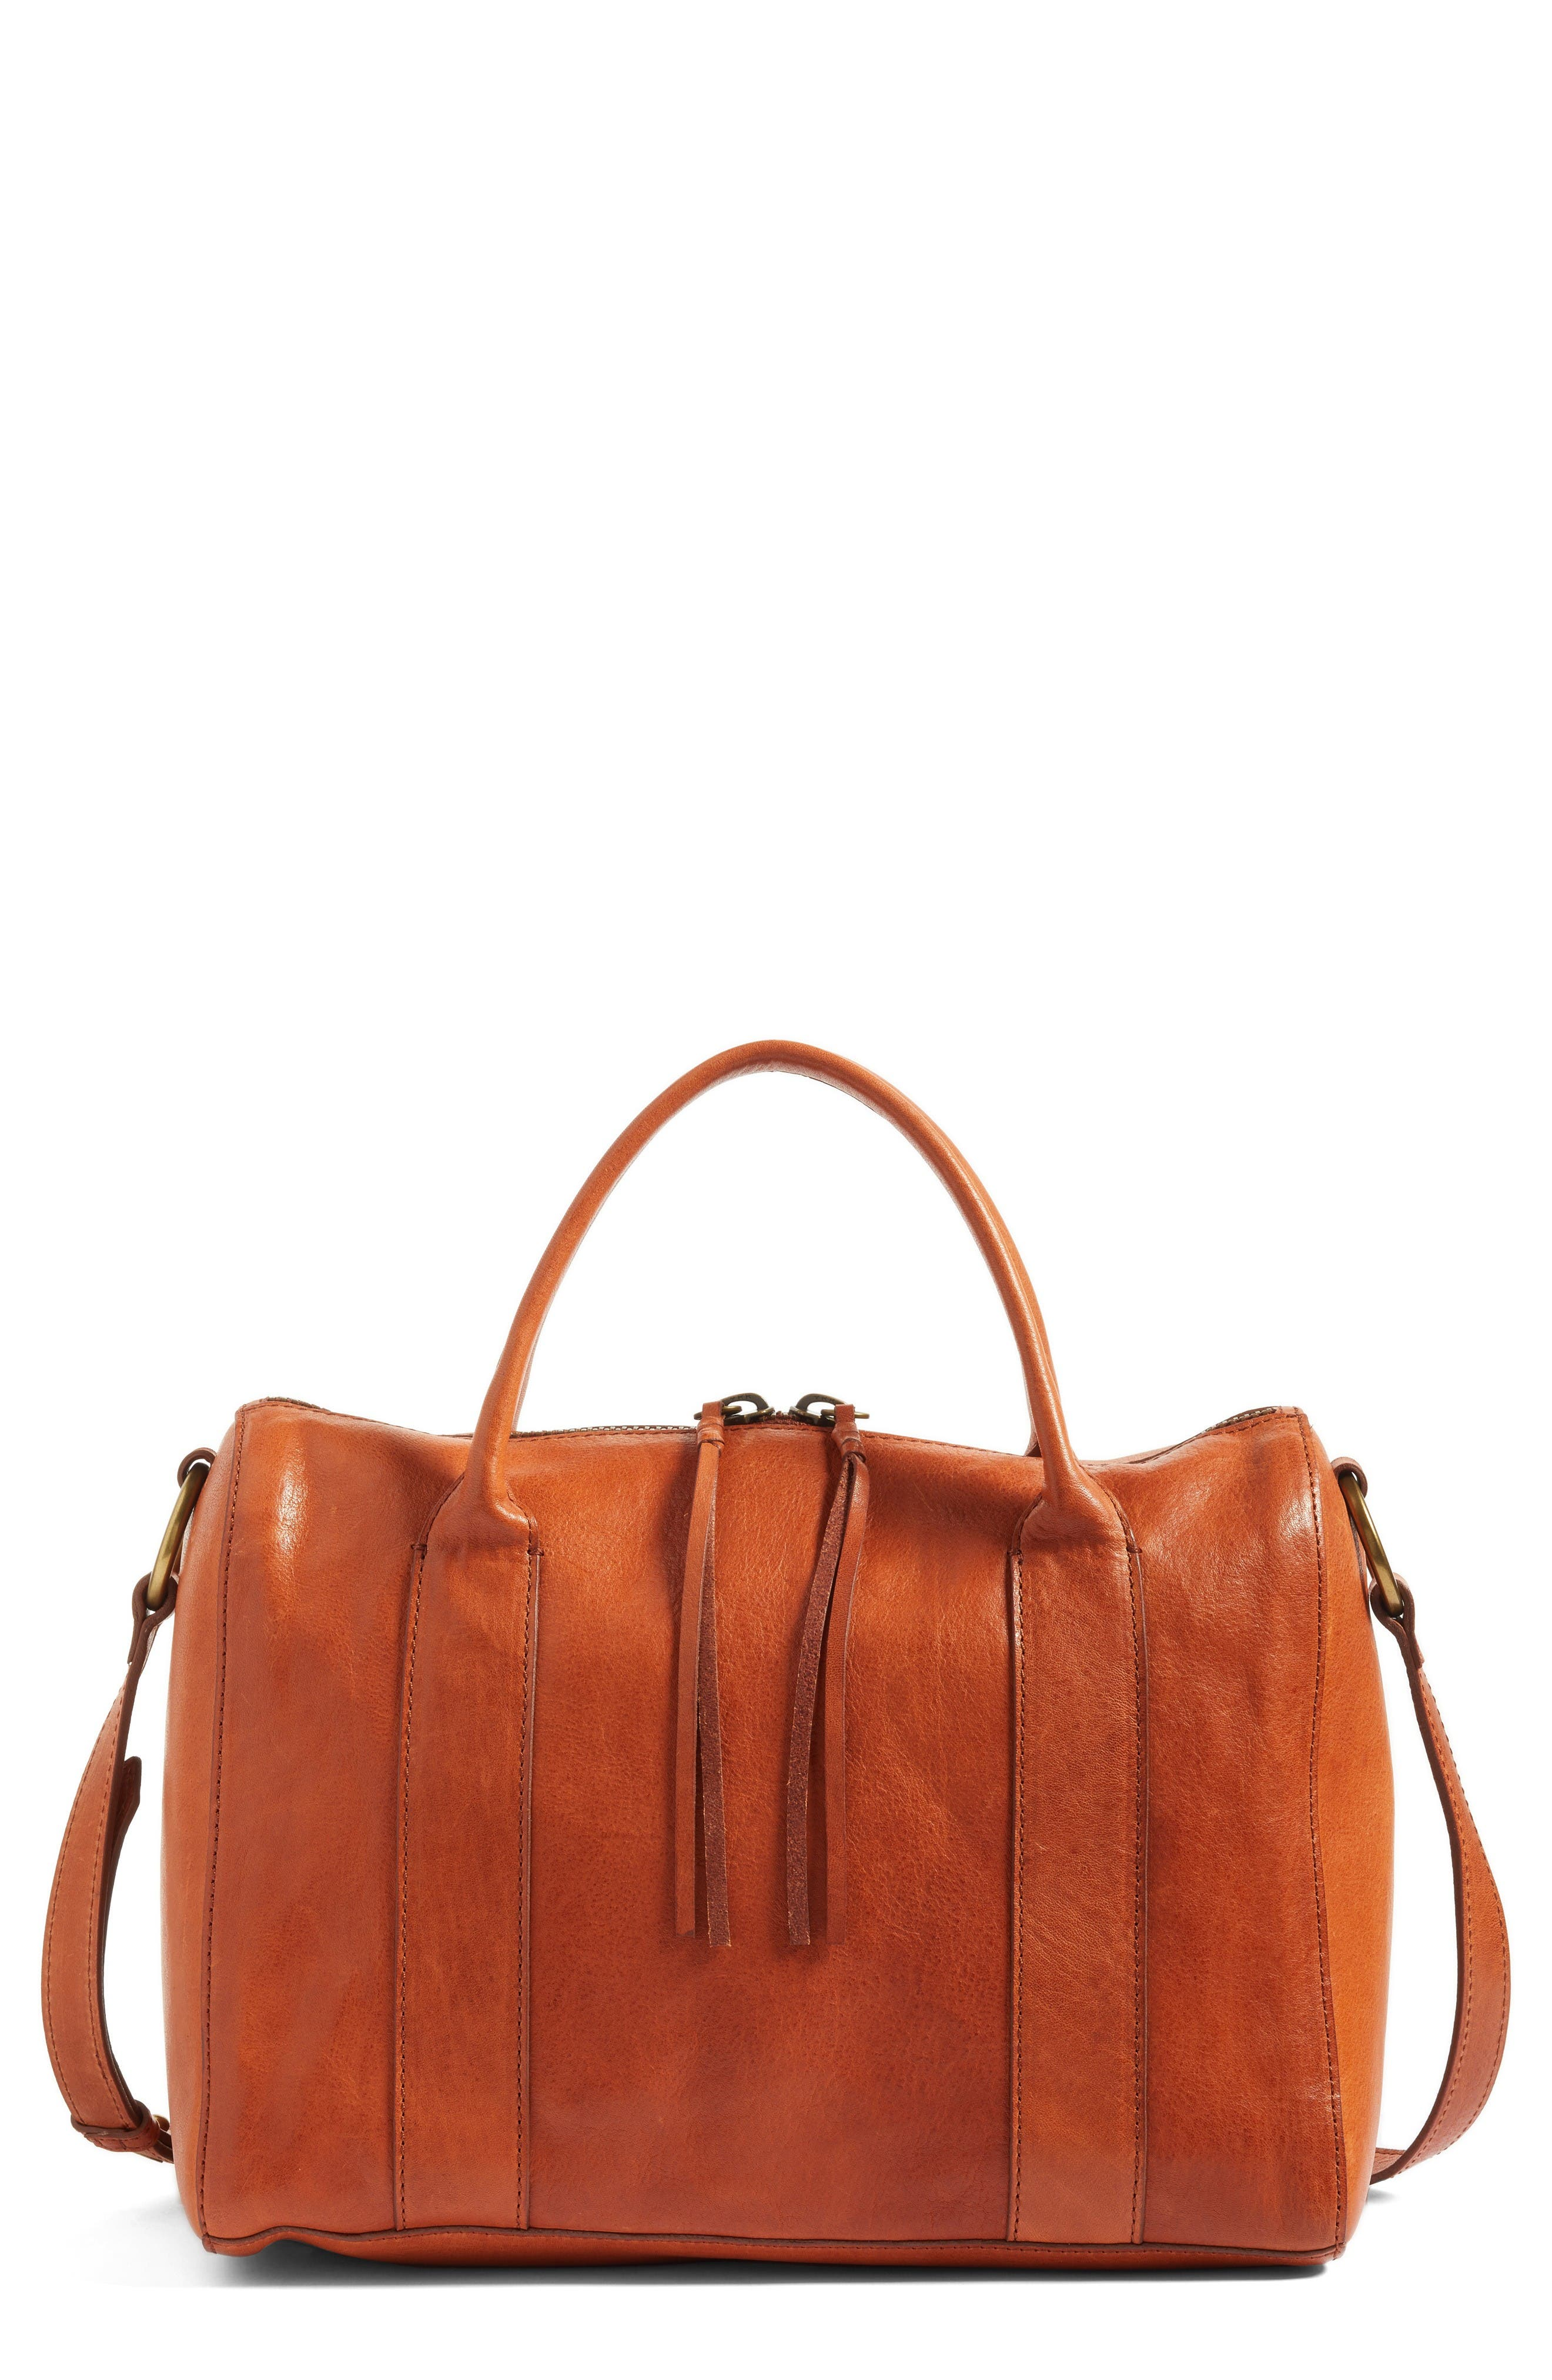 MADEWELL O-Ring Leather Satchel